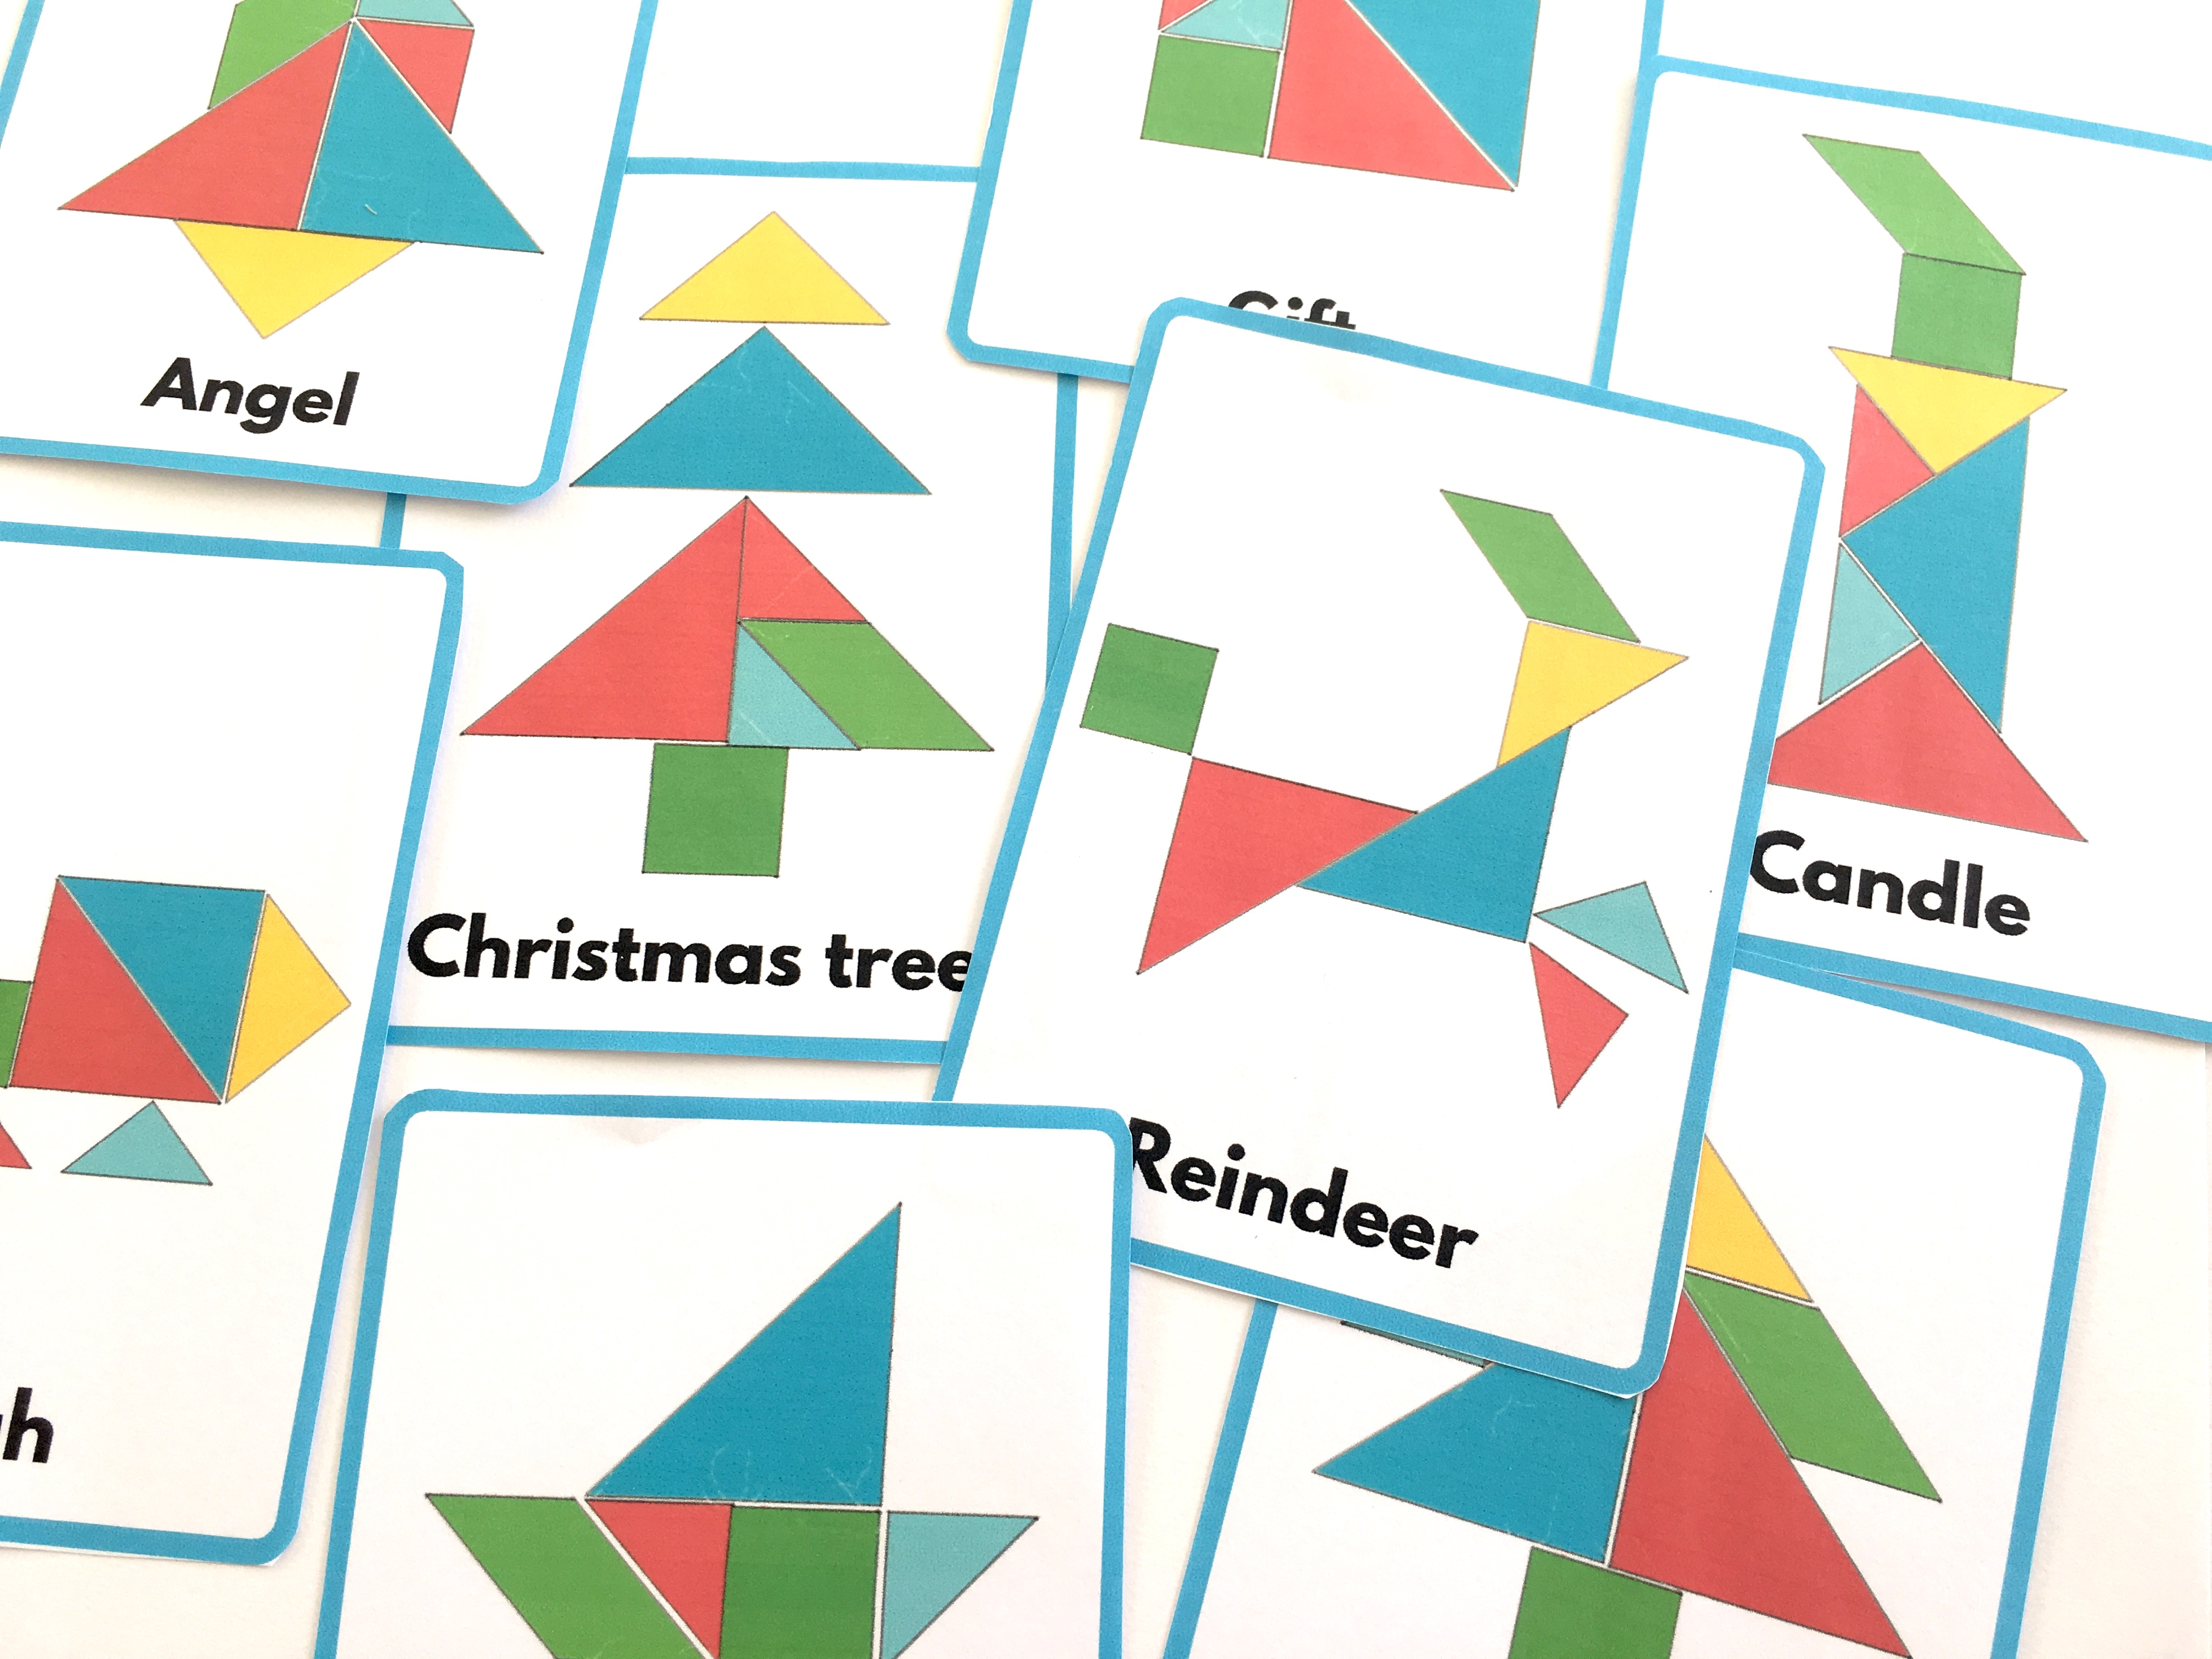 Tangram Shapes Printable That Are Influential